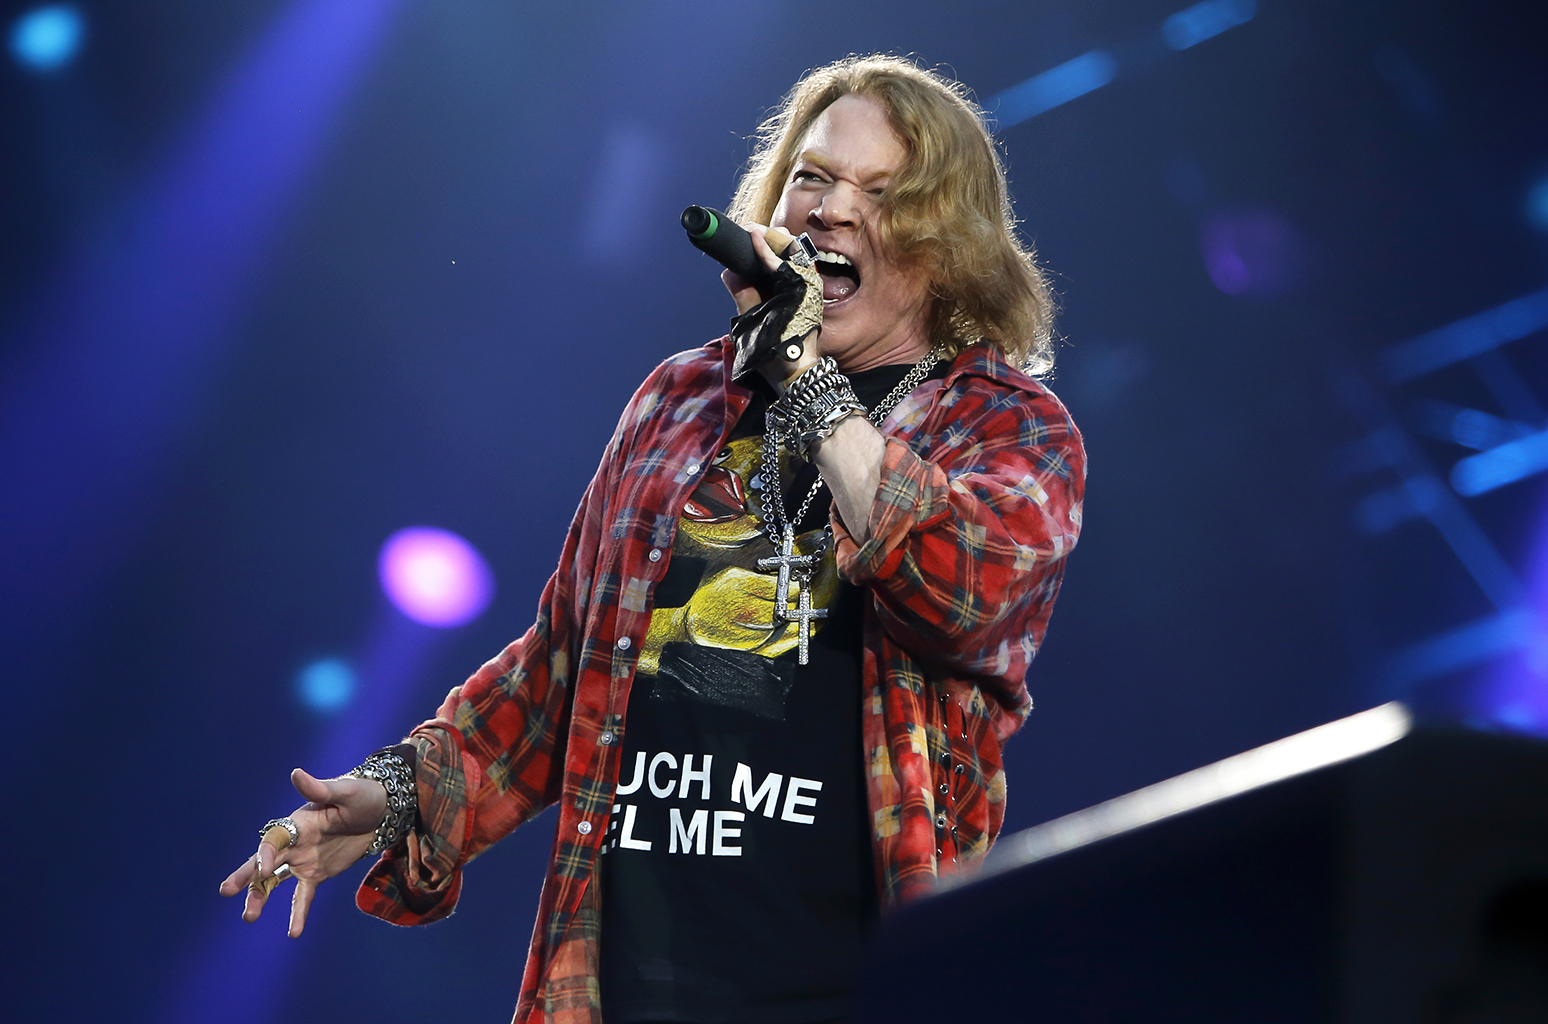 LONDON, ENGLAND - JUNE 04:  Axl Rose performs with  AC/DC at Queen Elizabeth Olympic Park on June 4, 2016 in London, England.  (Photo by Chiaki Nozu/Getty Images)